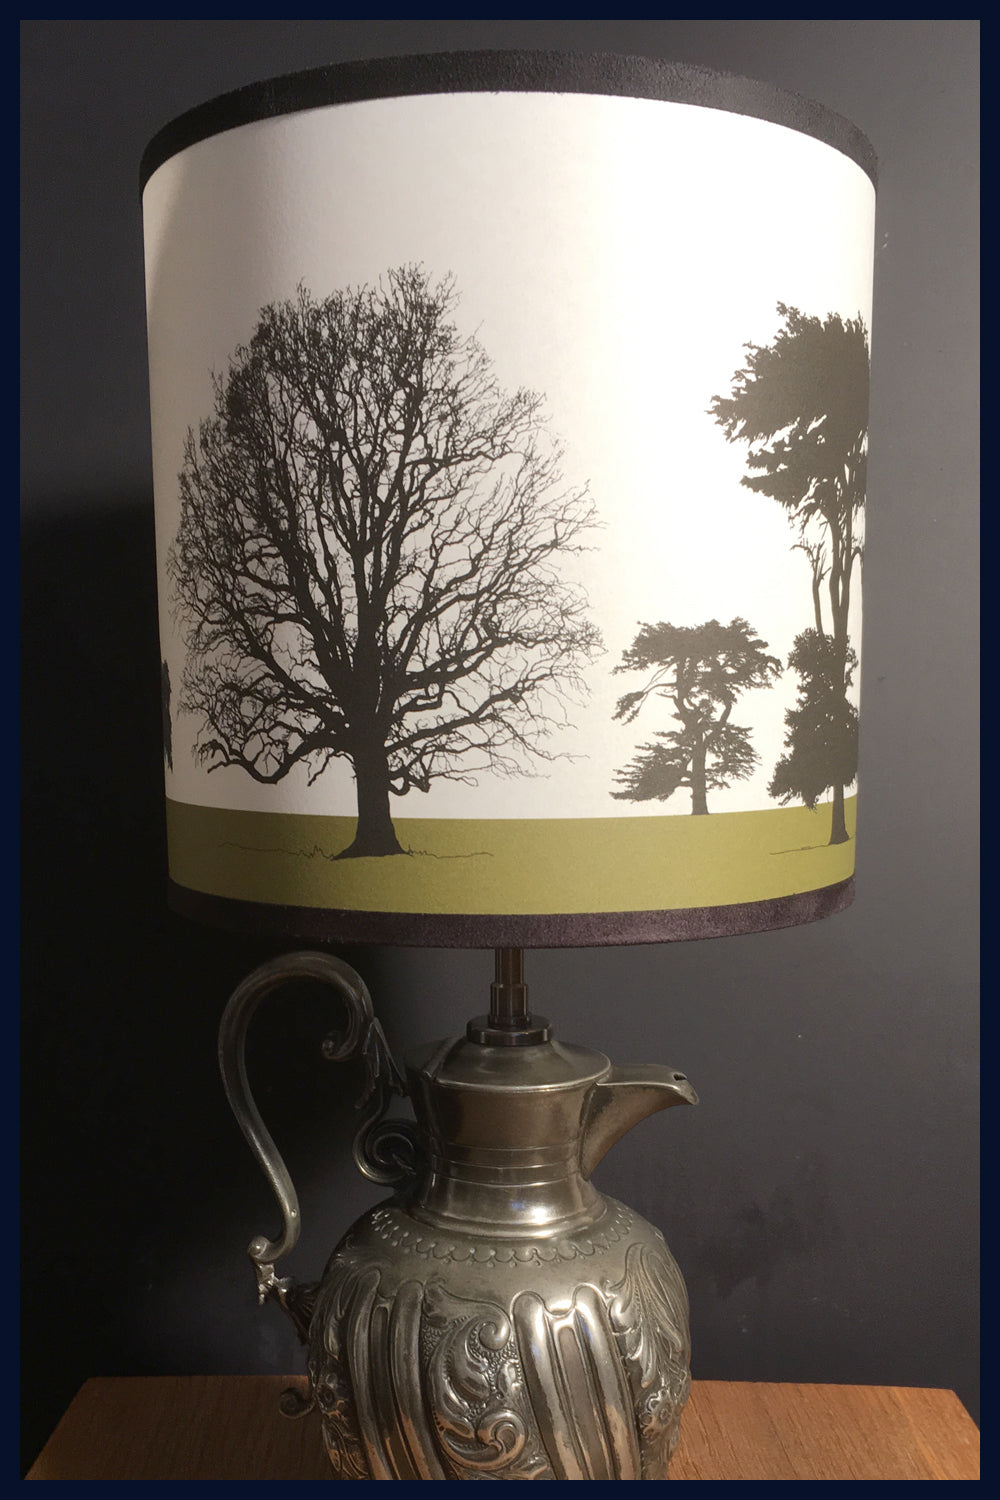 Arboretum Lampshade Collection - Featuring Norfolk Trees